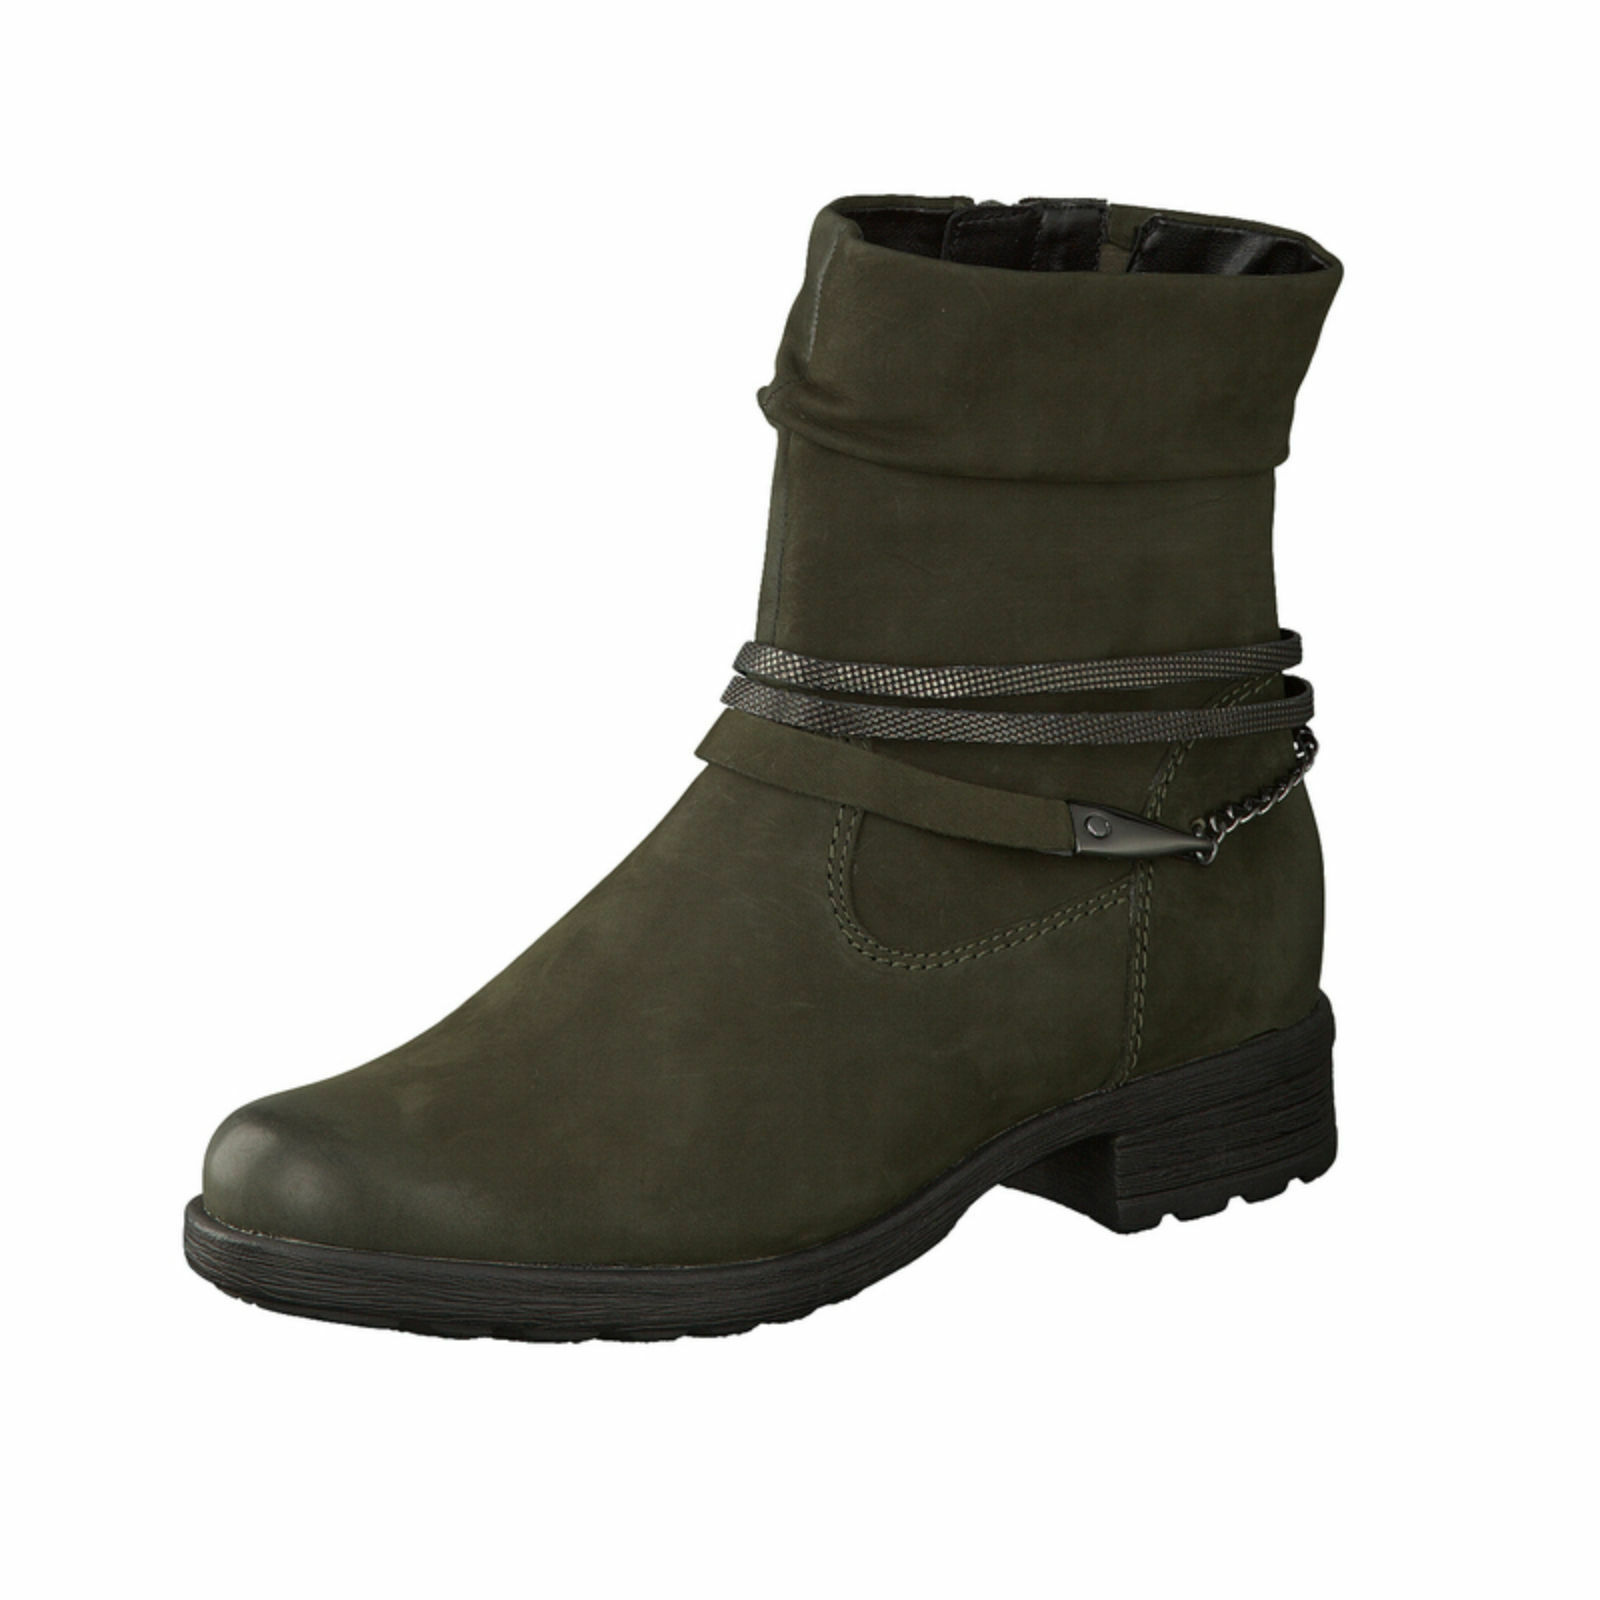 Gabor ladies Boots 32.781.33 Green Oiled Nubuk